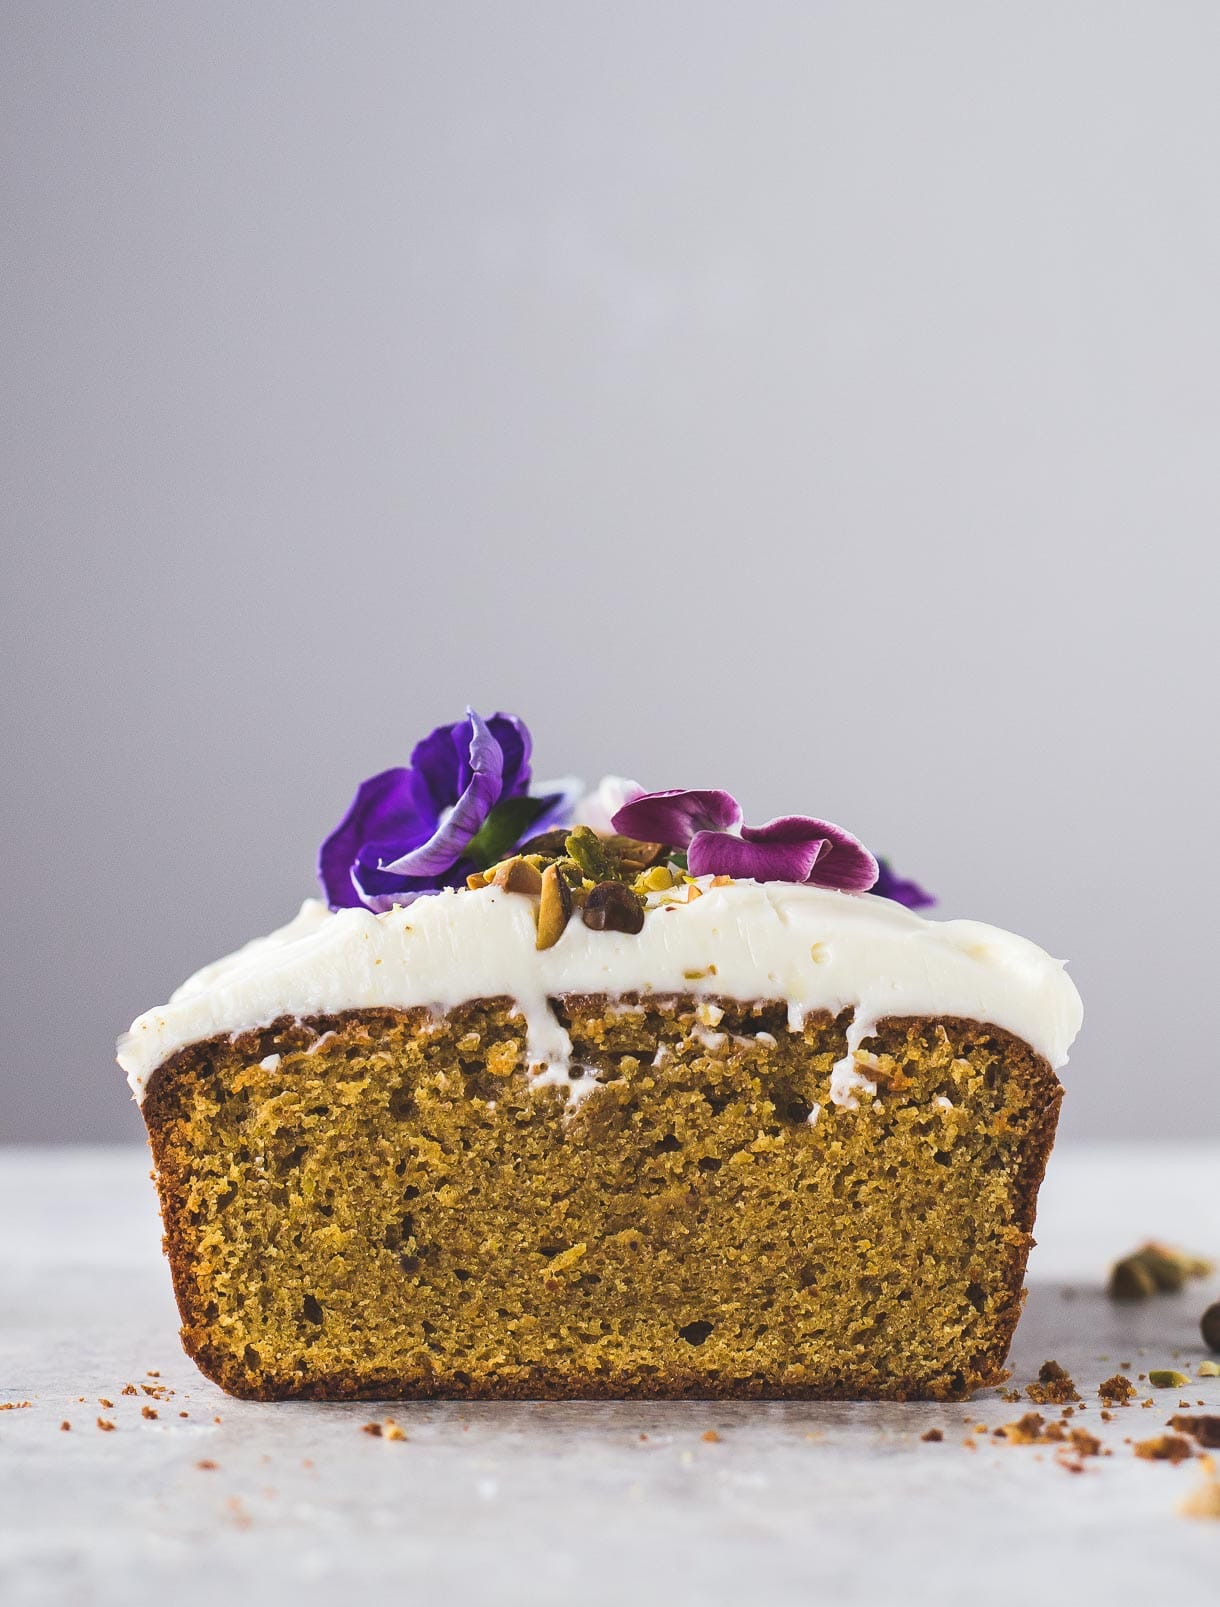 Pistachio Cardamom Cake with Cream Cheese Frosting {gluten-free}